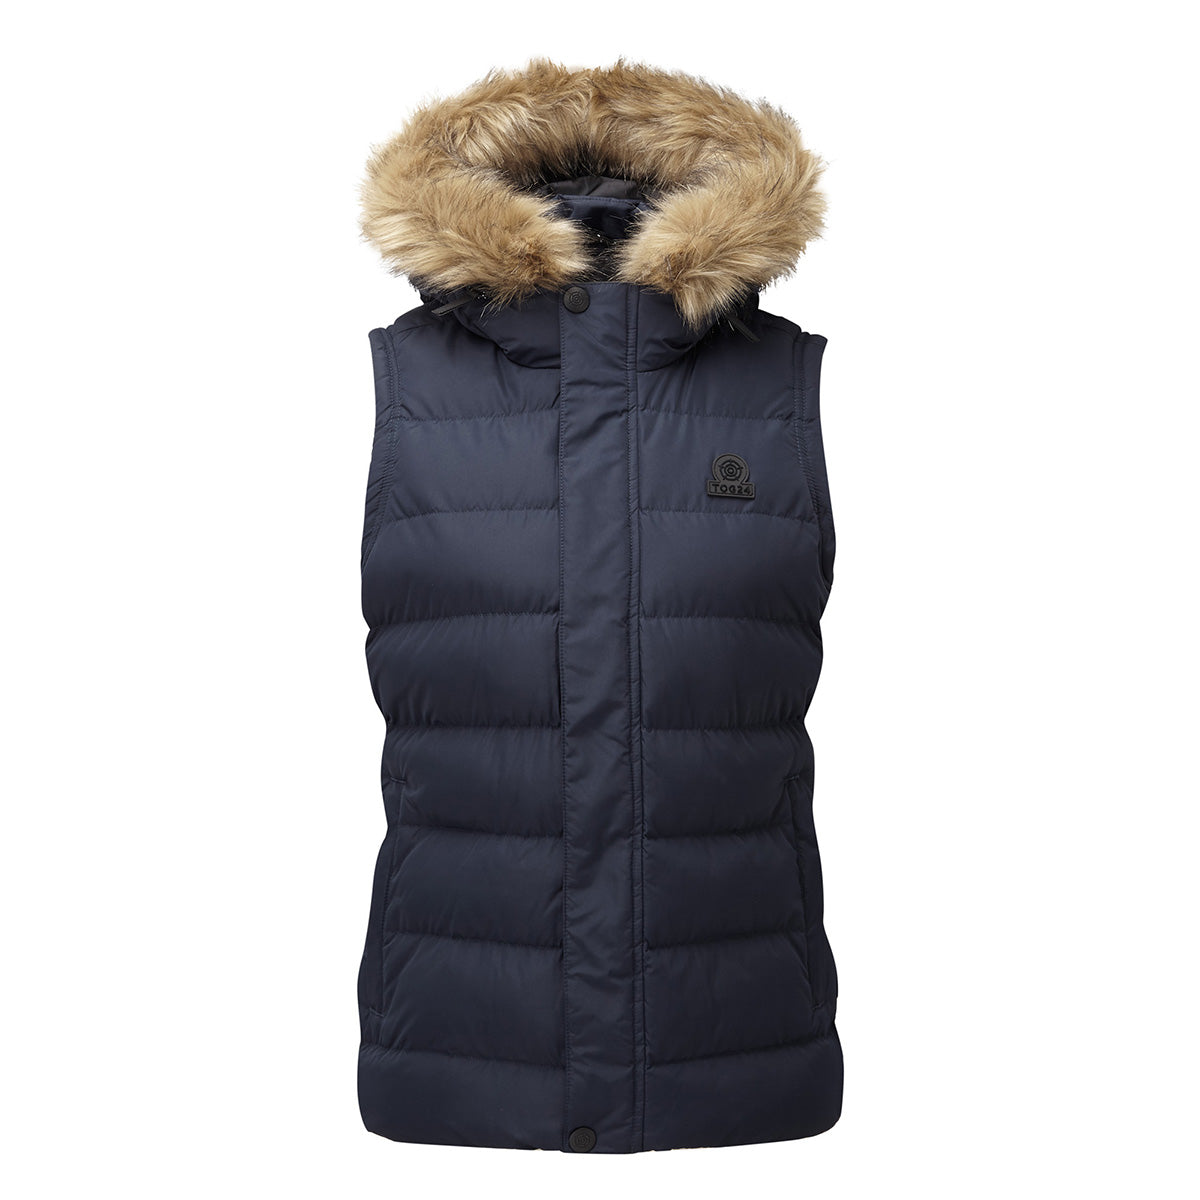 Yeadon Womens Insulated Gilet - Navy image 4